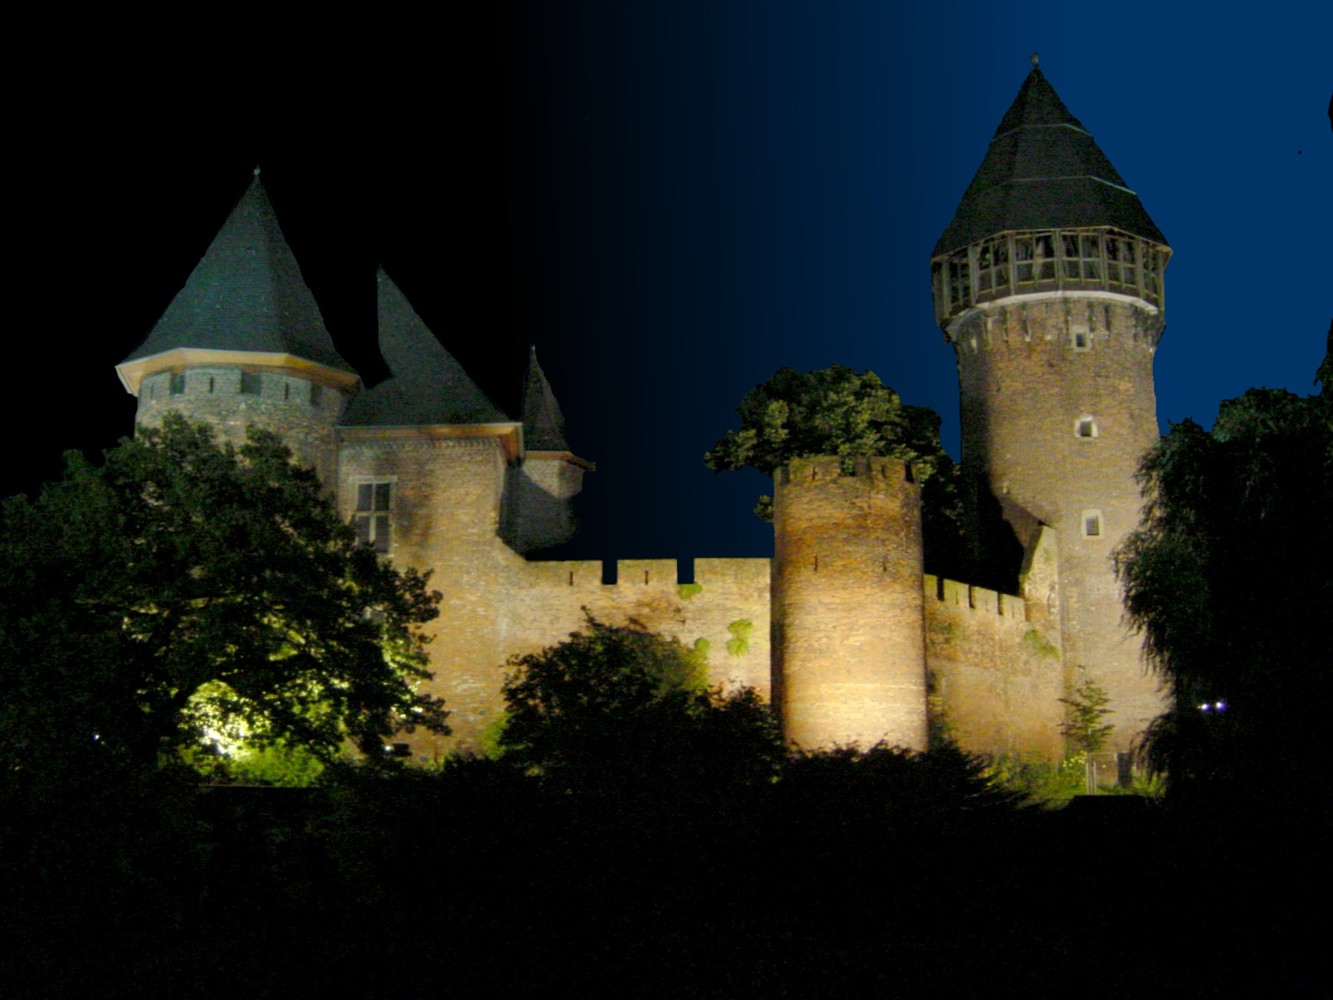 http://upload.wikimedia.org/wikipedia/commons/1/12/Burg-Linn-Nacht.jpg